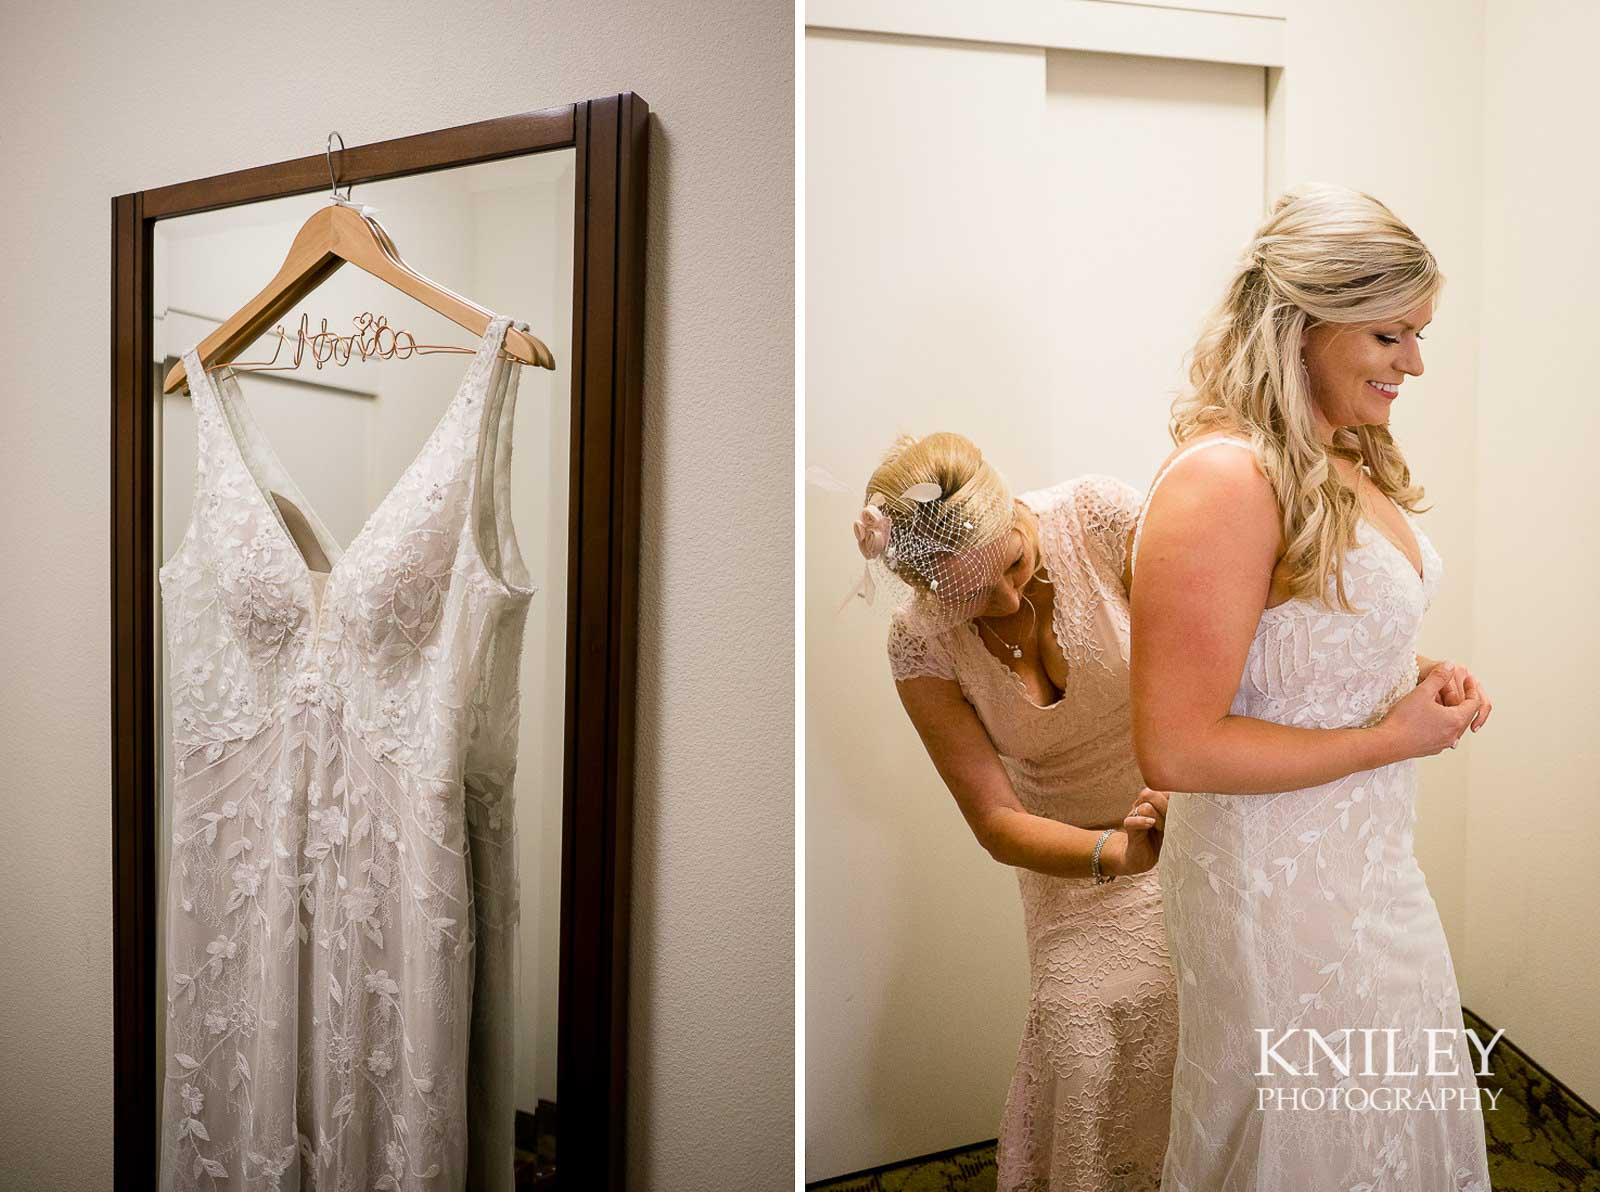 03-Hilton-Garden-Inn-Downtown-Wedding-Getting-Ready-Rochester-NY-Kniley-Photography.jpg